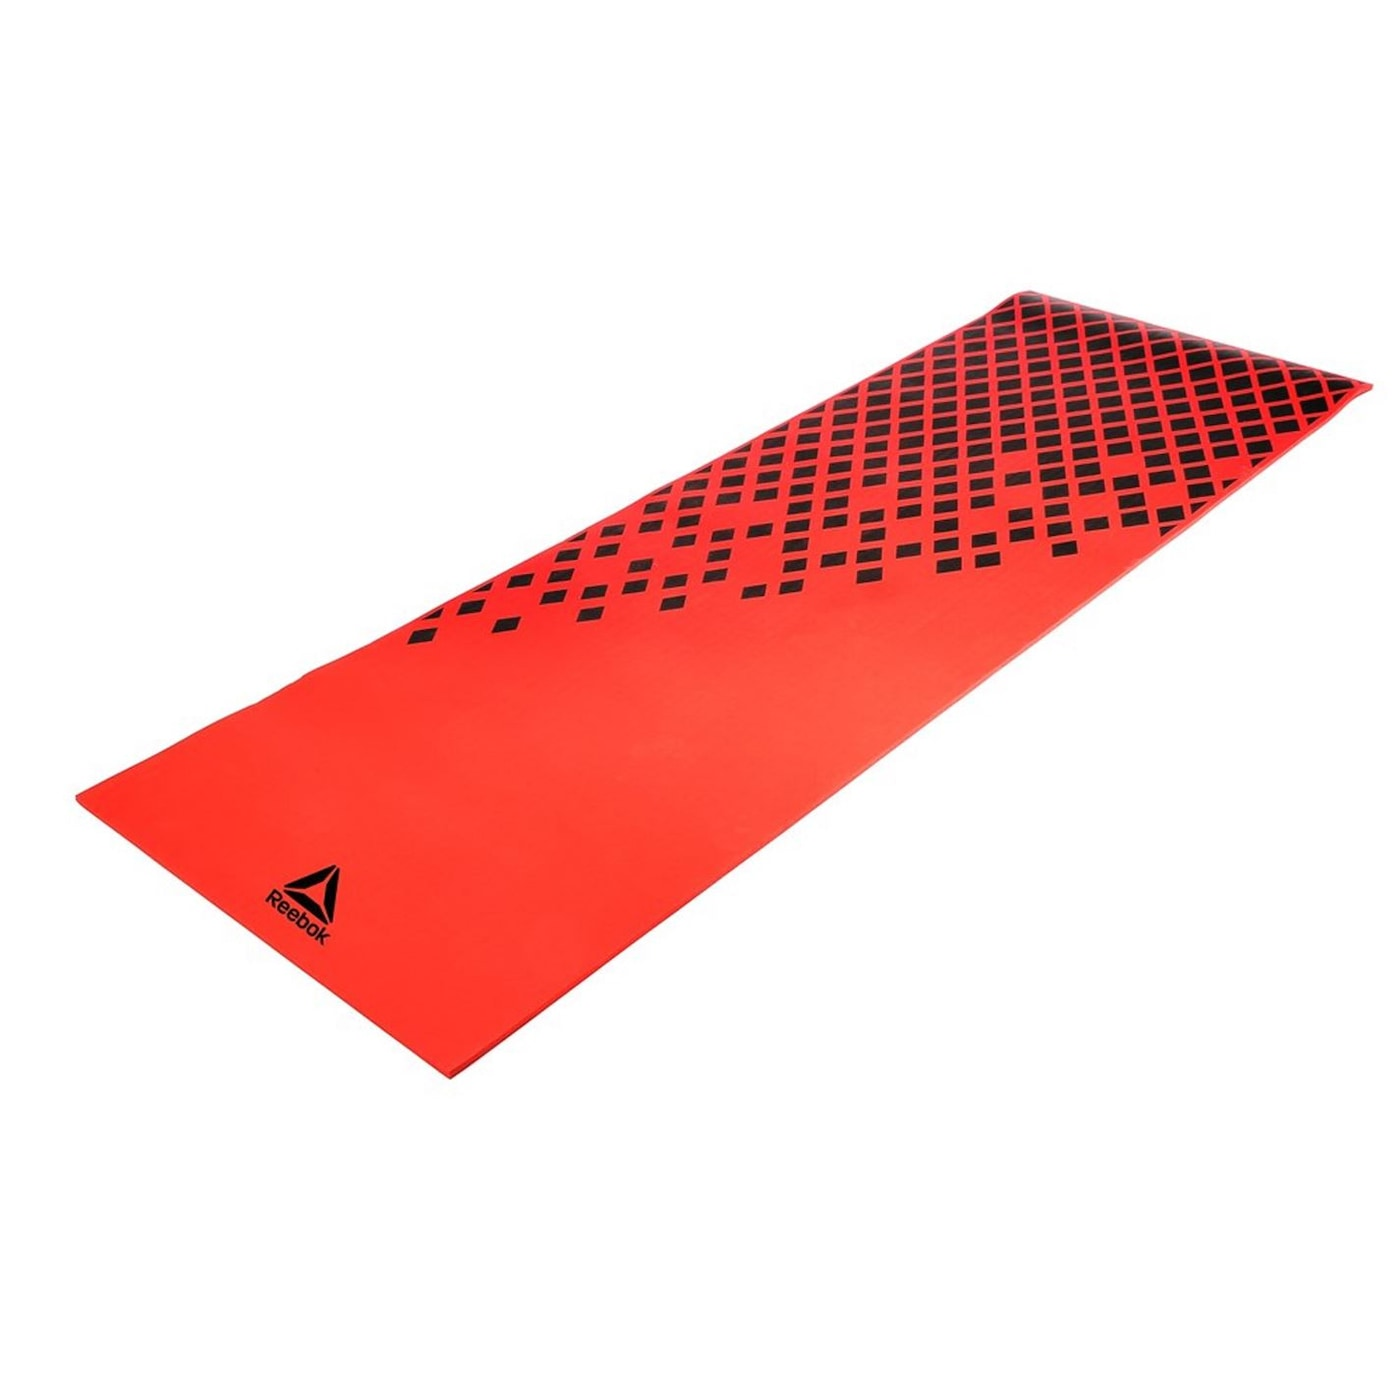 Reebok Training Mat